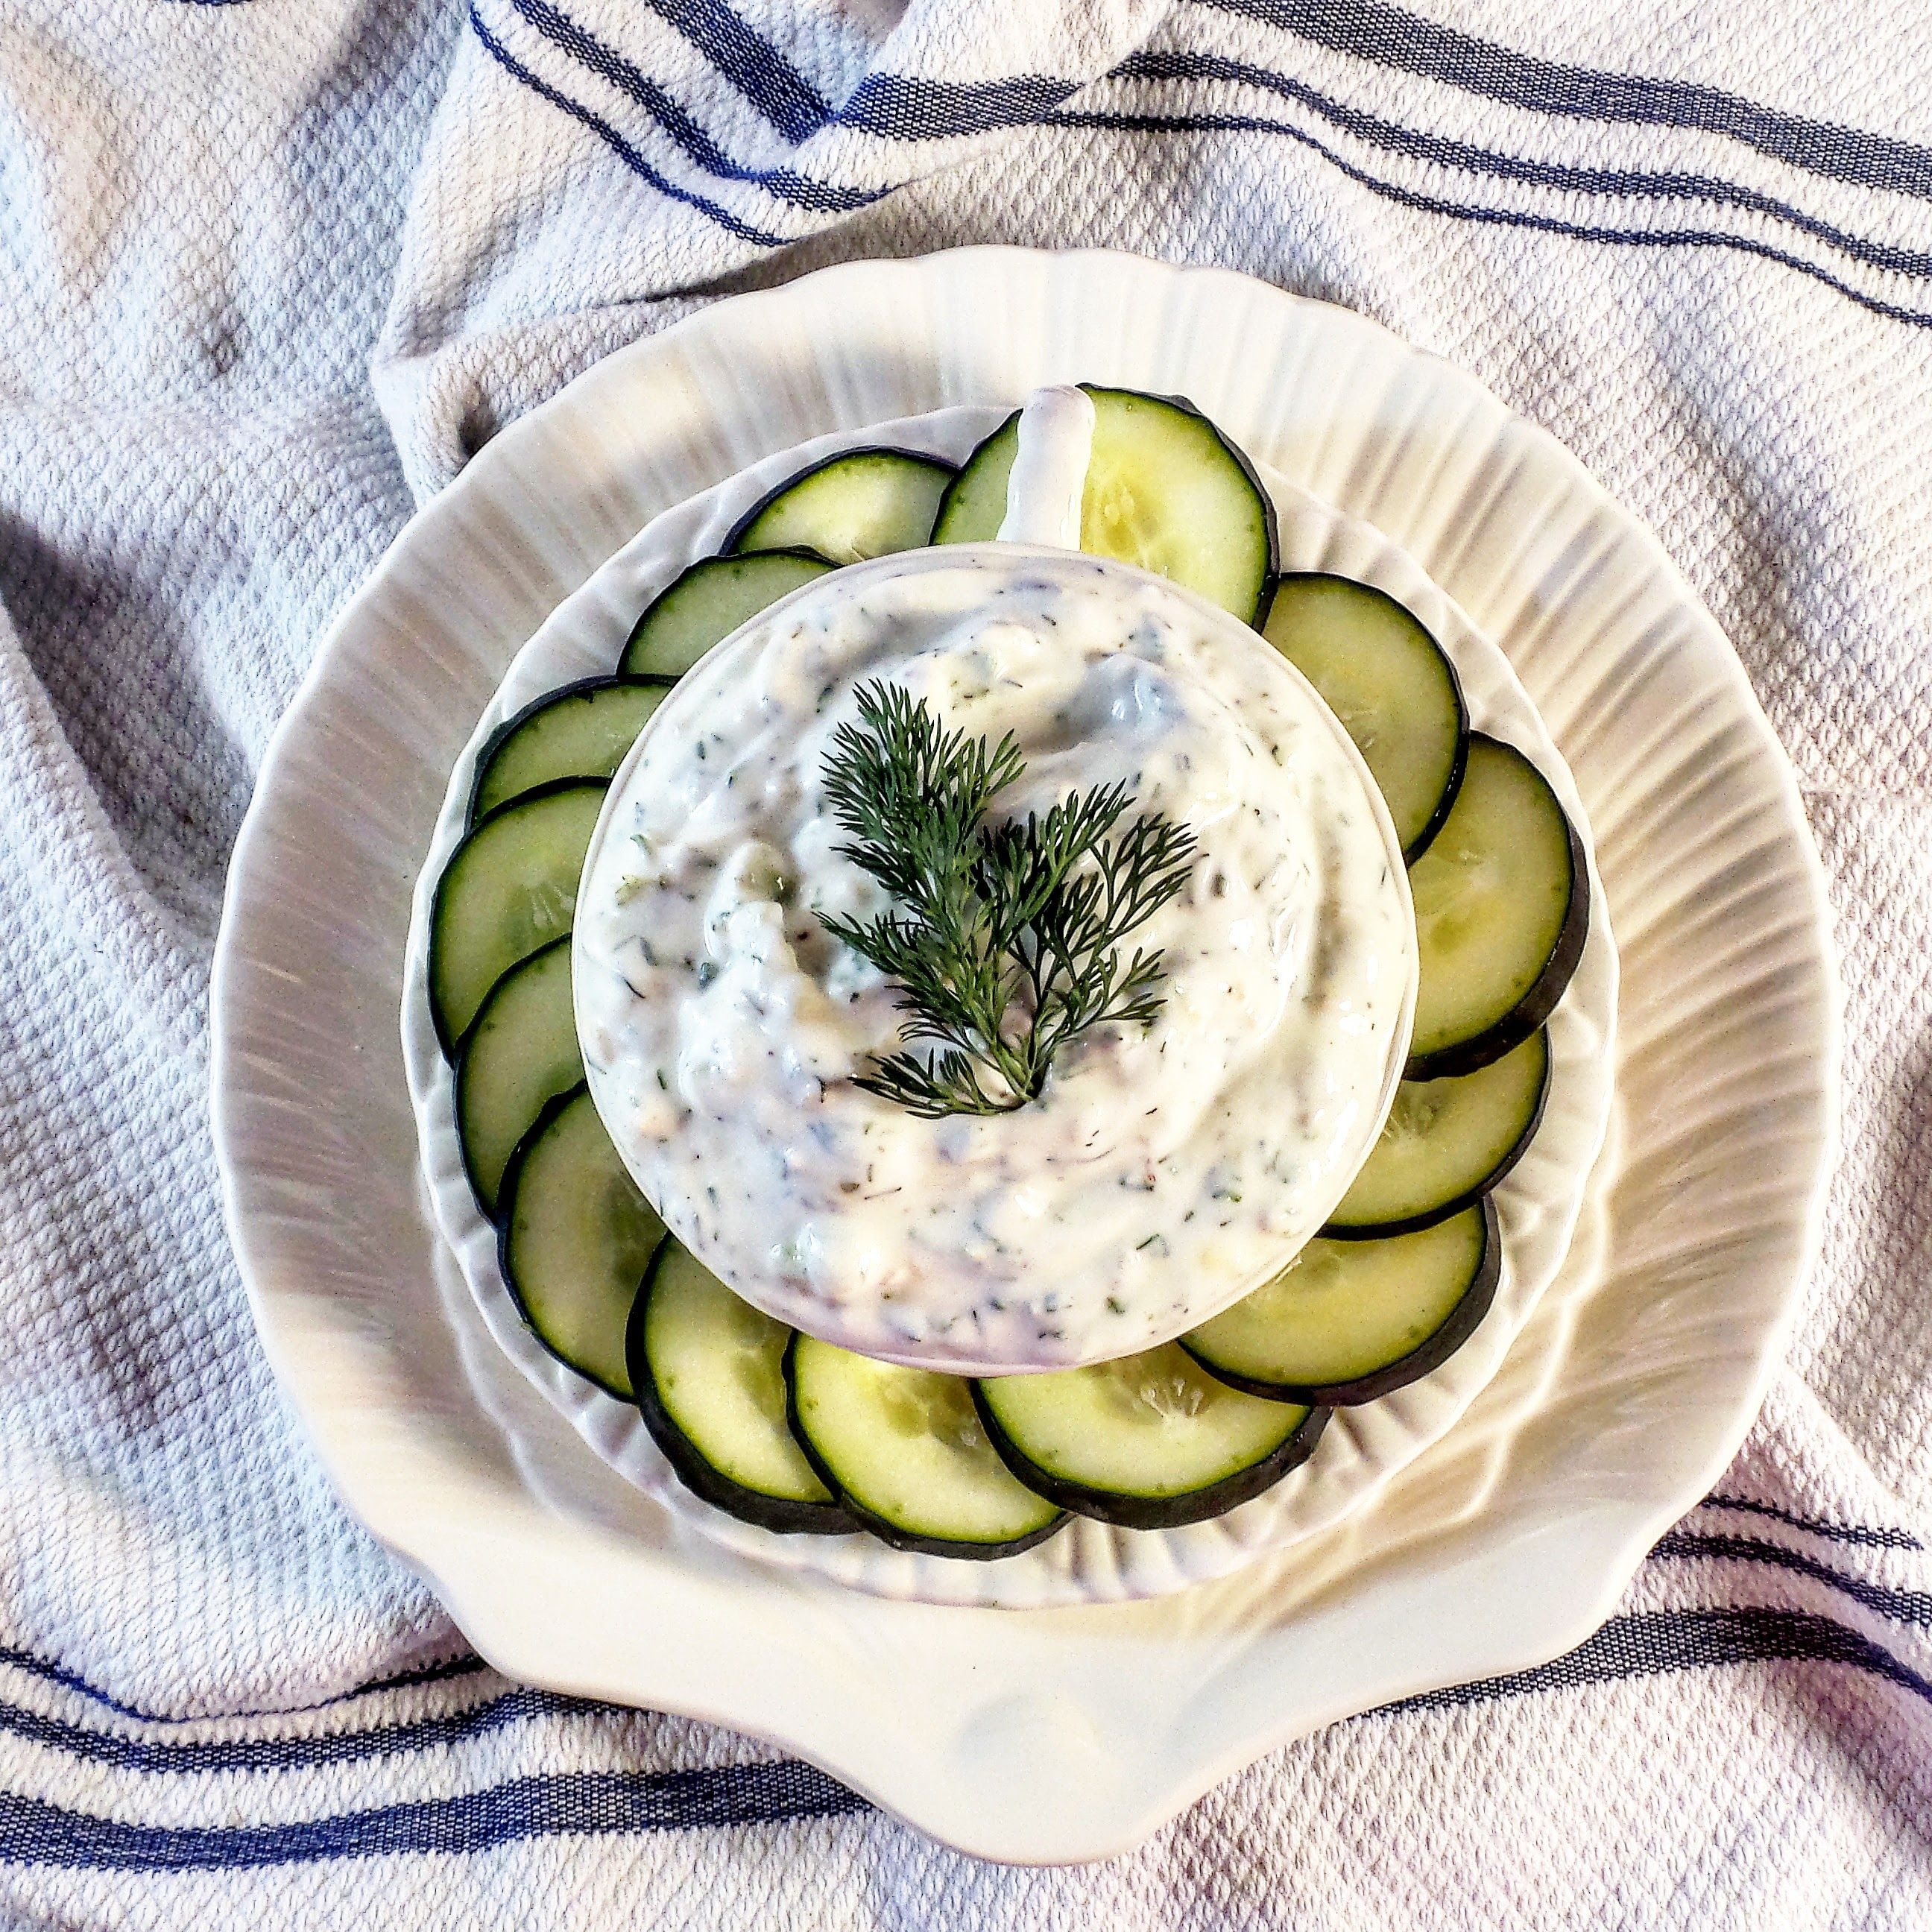 Creamy, tangy, and bold tzatziki sauce is the perfect healthy dip and sauce for veggies, chips, pitas, chicken, and lamb.